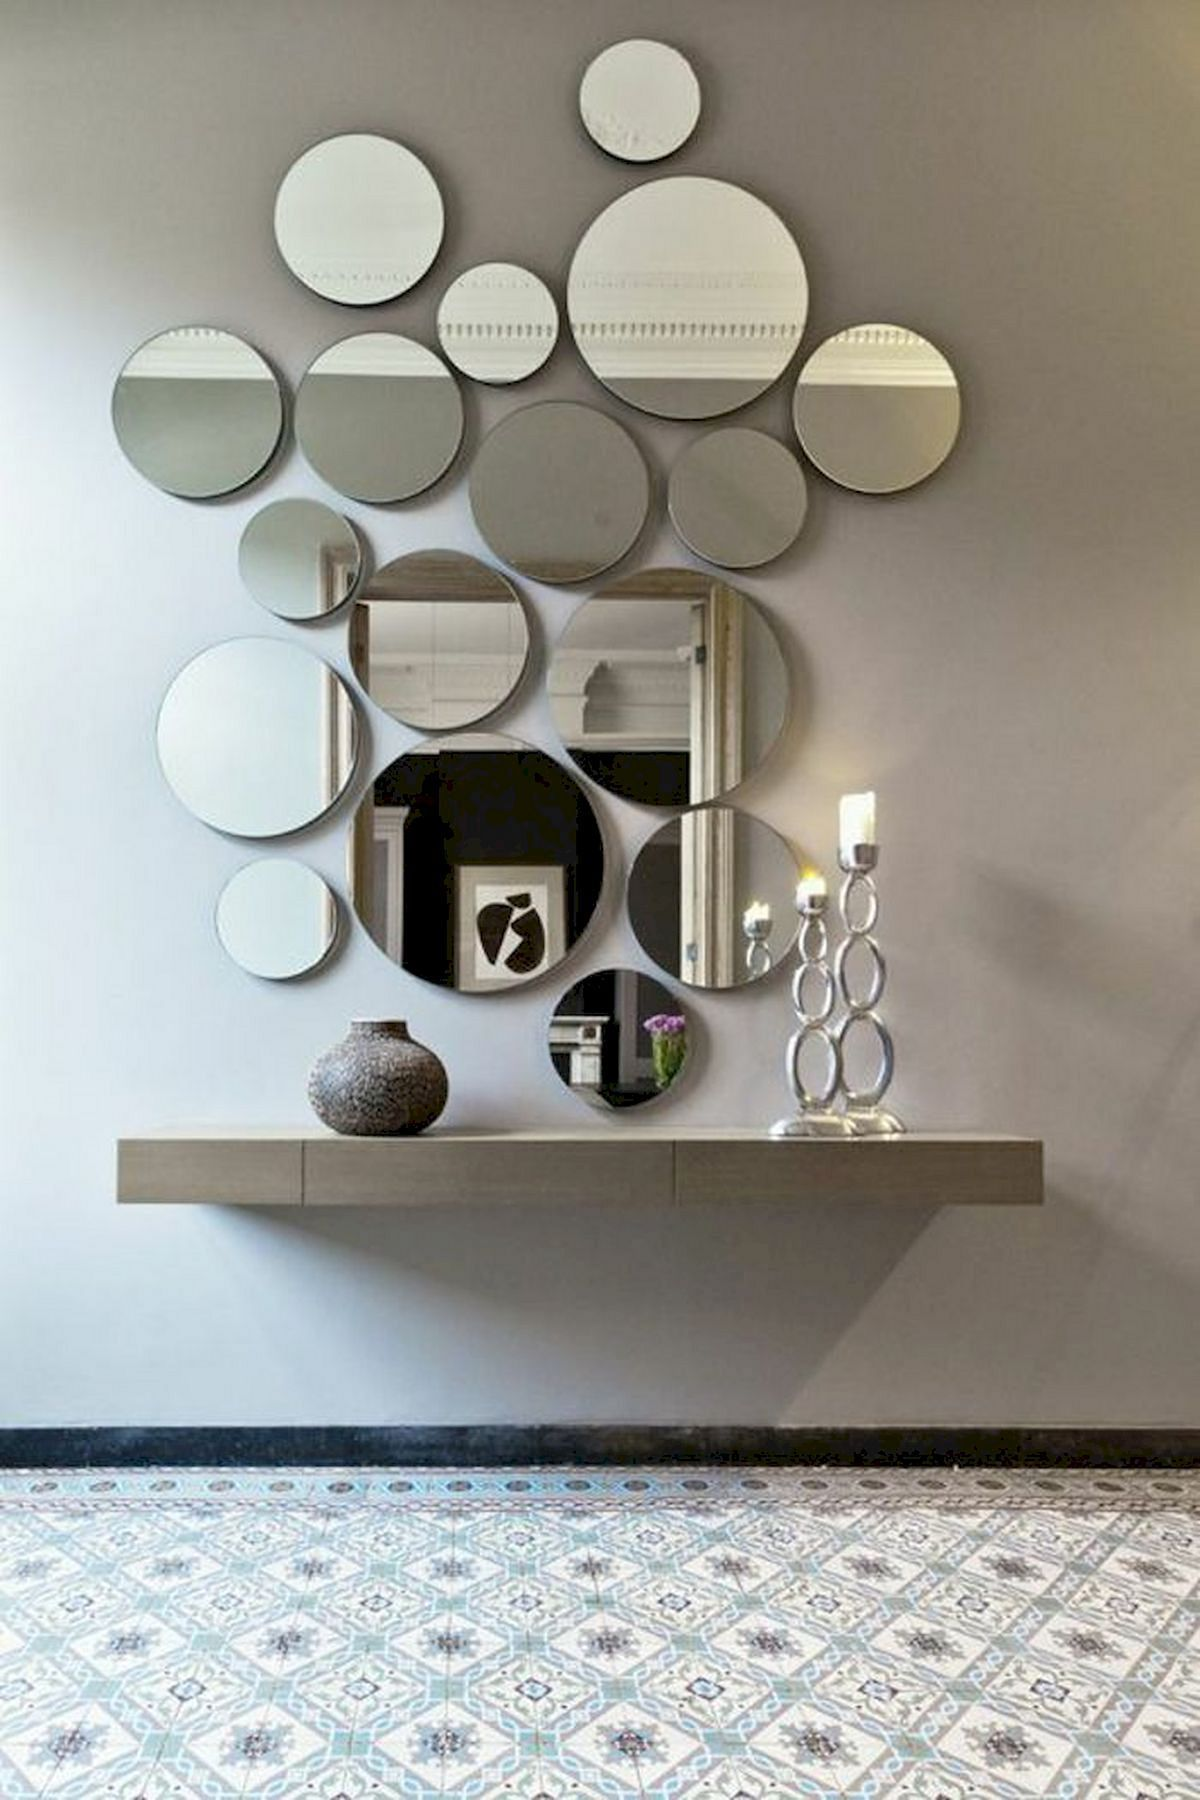 Top 10 Marvelous Mirror Wall Decoration Ideas That Inspired You Decor It S In 2020 Mirror Design Wall Mirror Wall Decor Decor